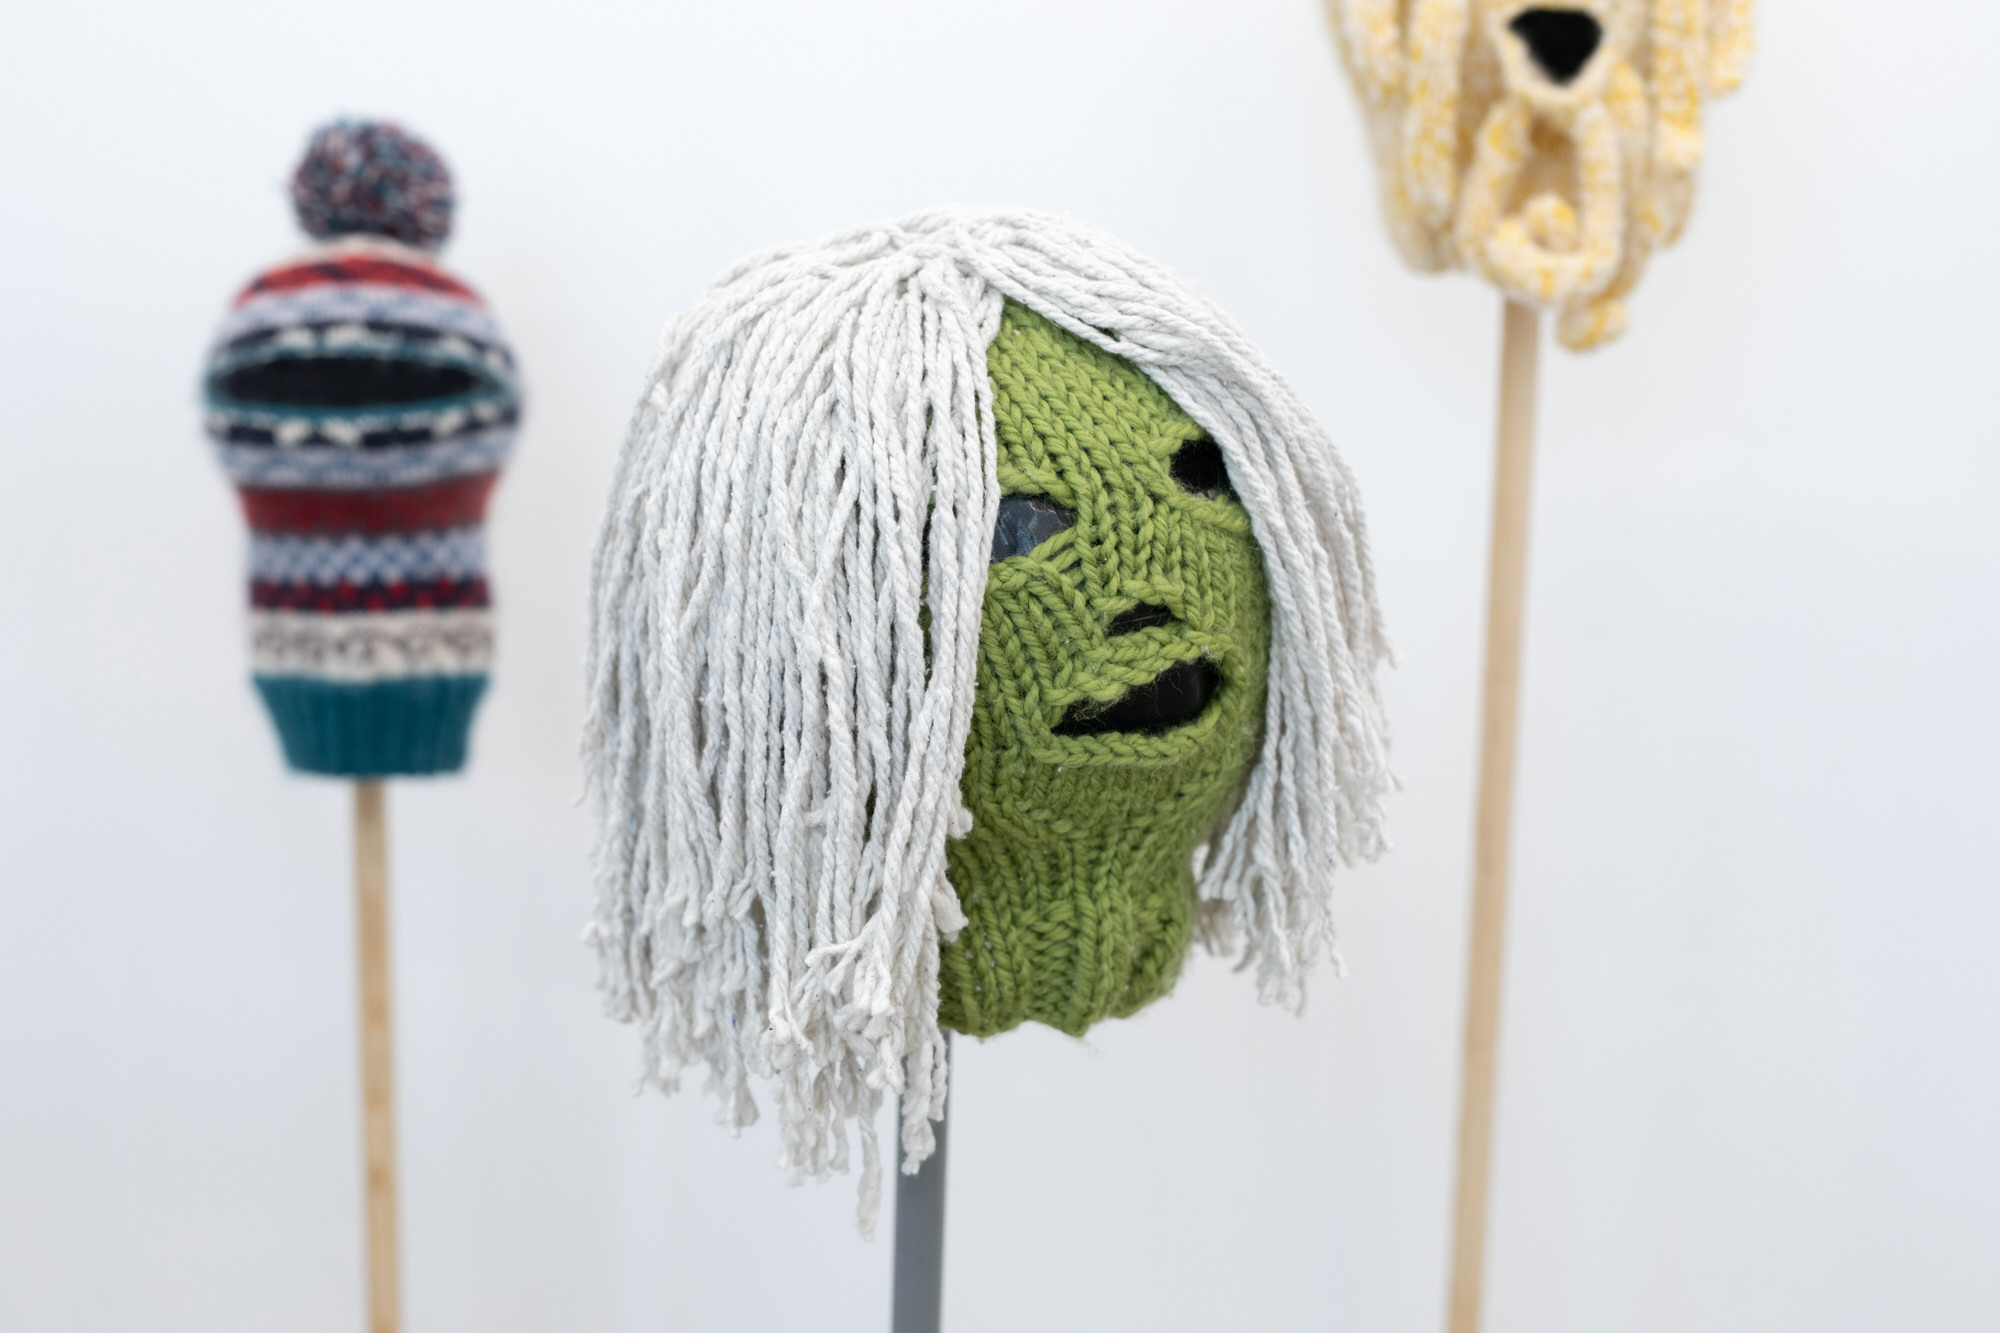 Philipa Carruthers | Knitted masks | Image by McAteer Photo